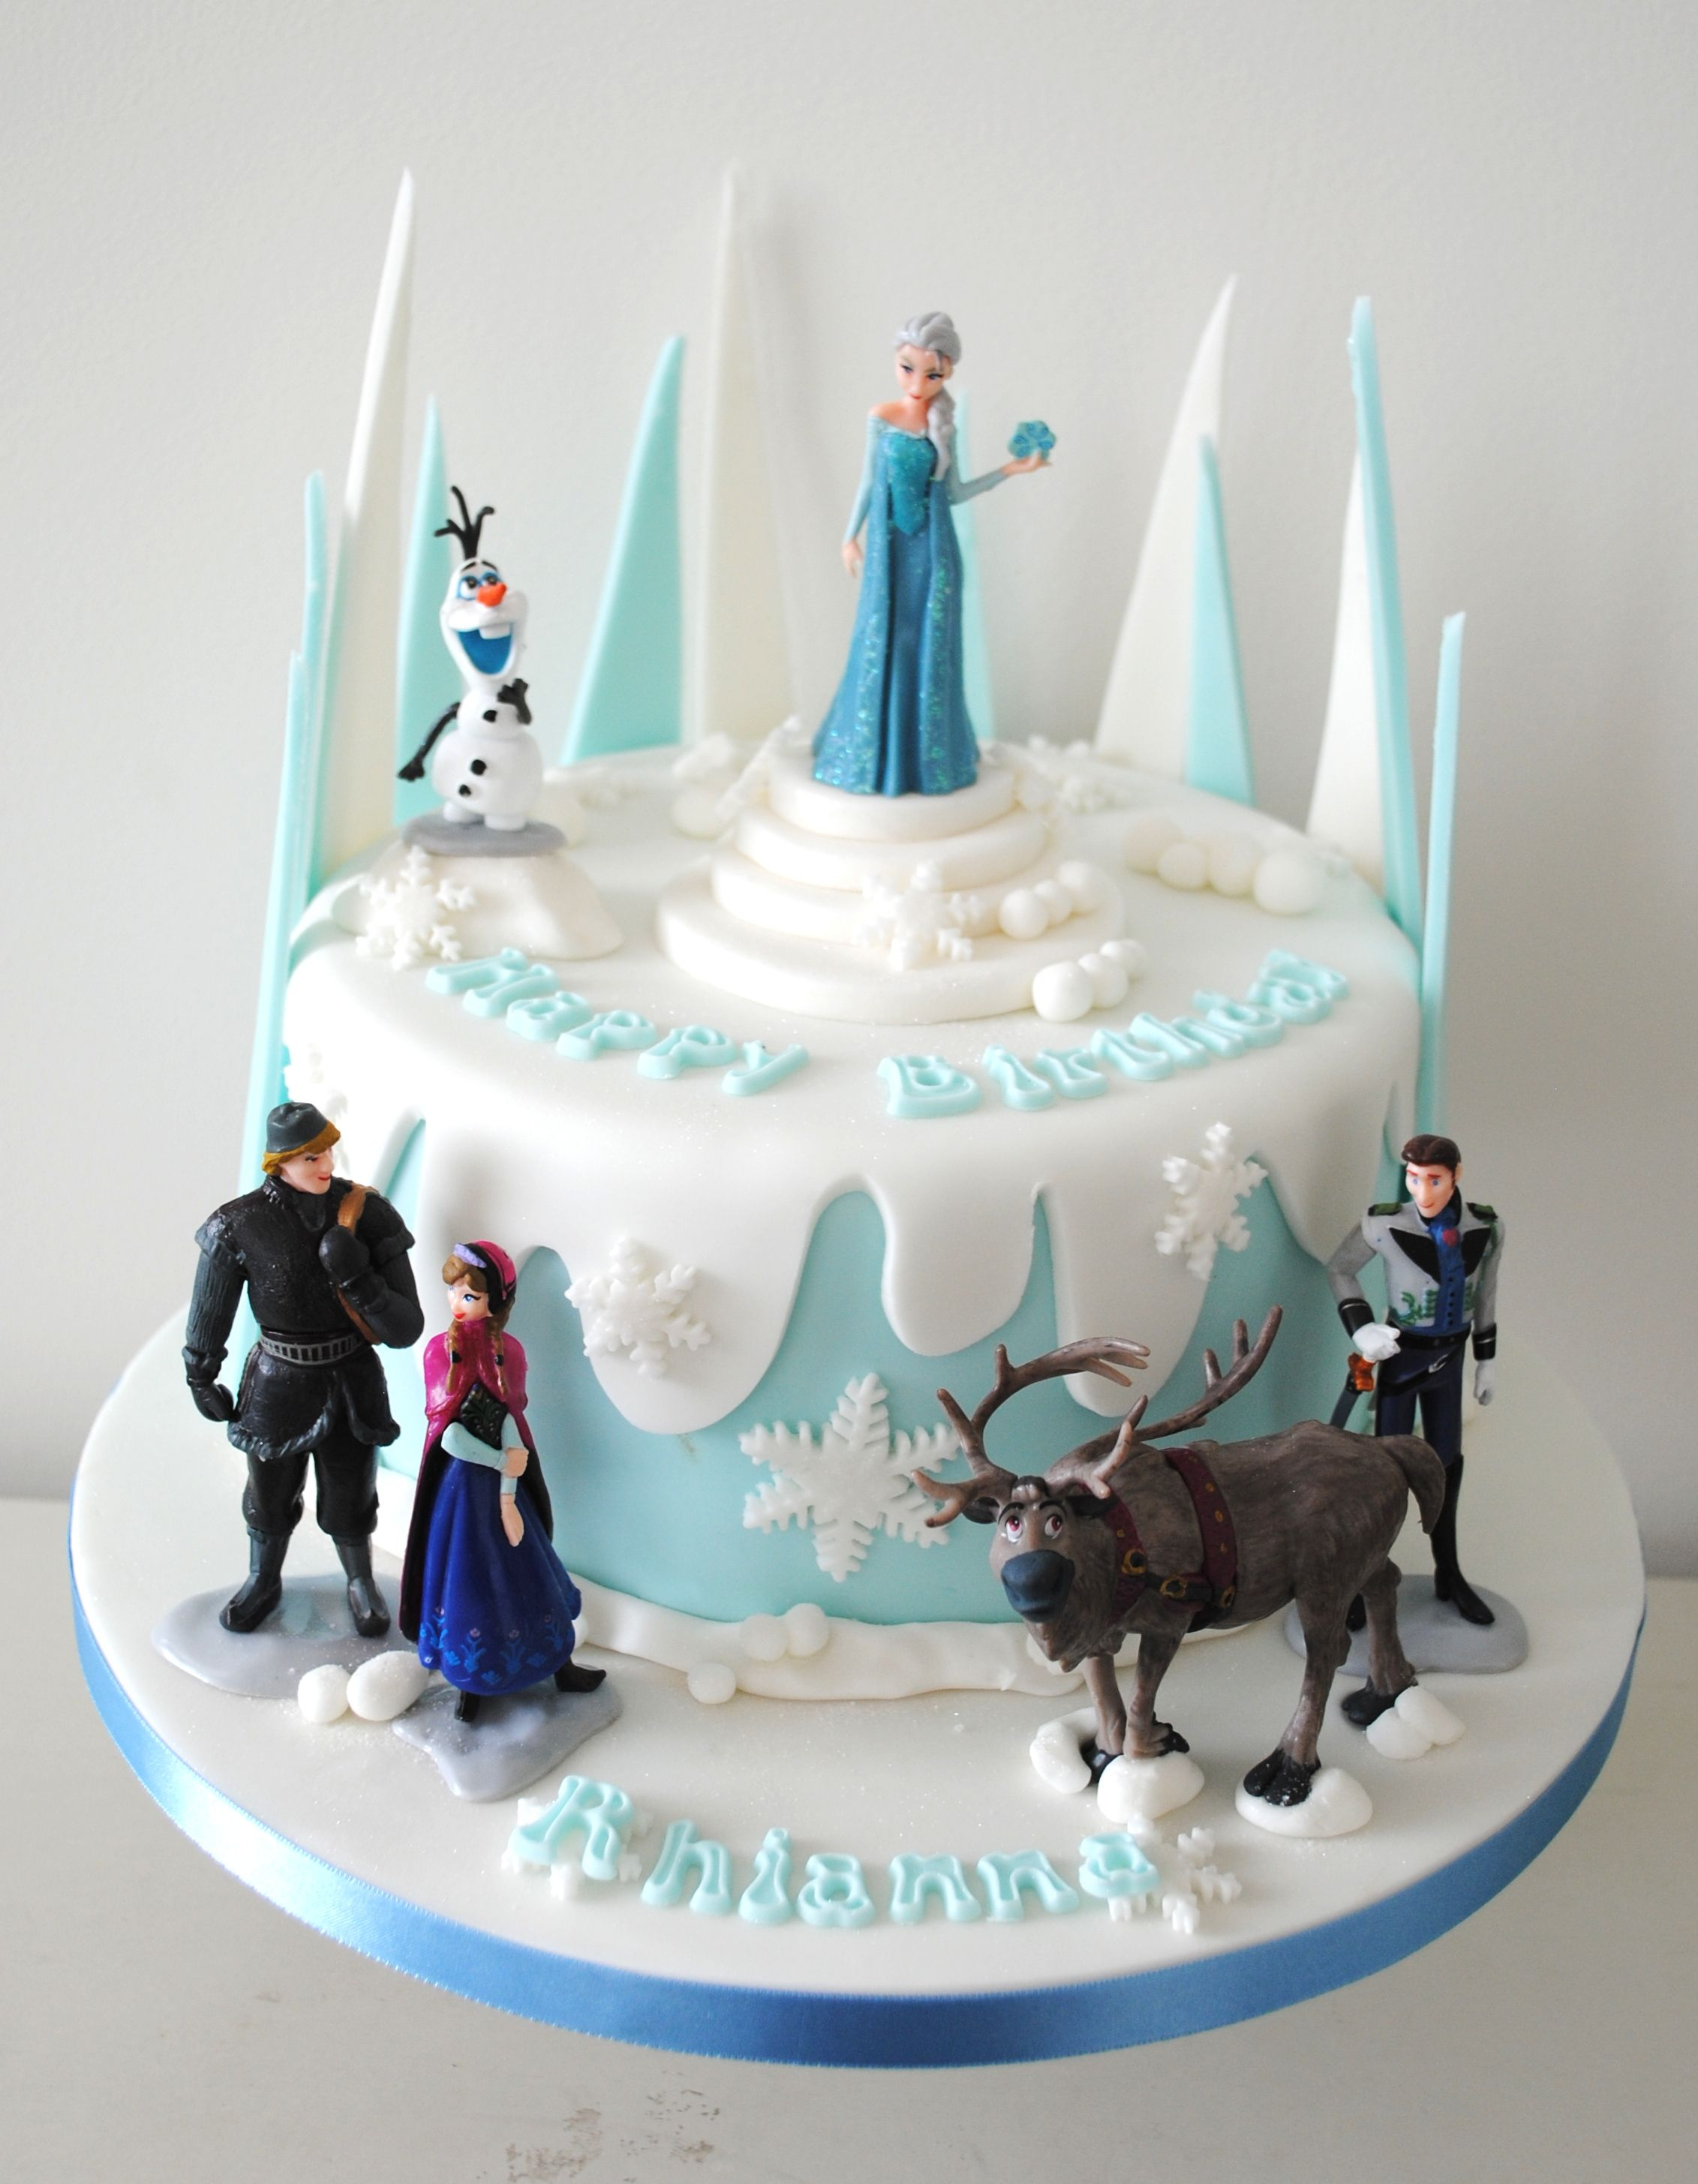 Astounding 32 Elegant Image Of Frozen Birthday Cake Ideas Birijus Com Birthday Cards Printable Trancafe Filternl